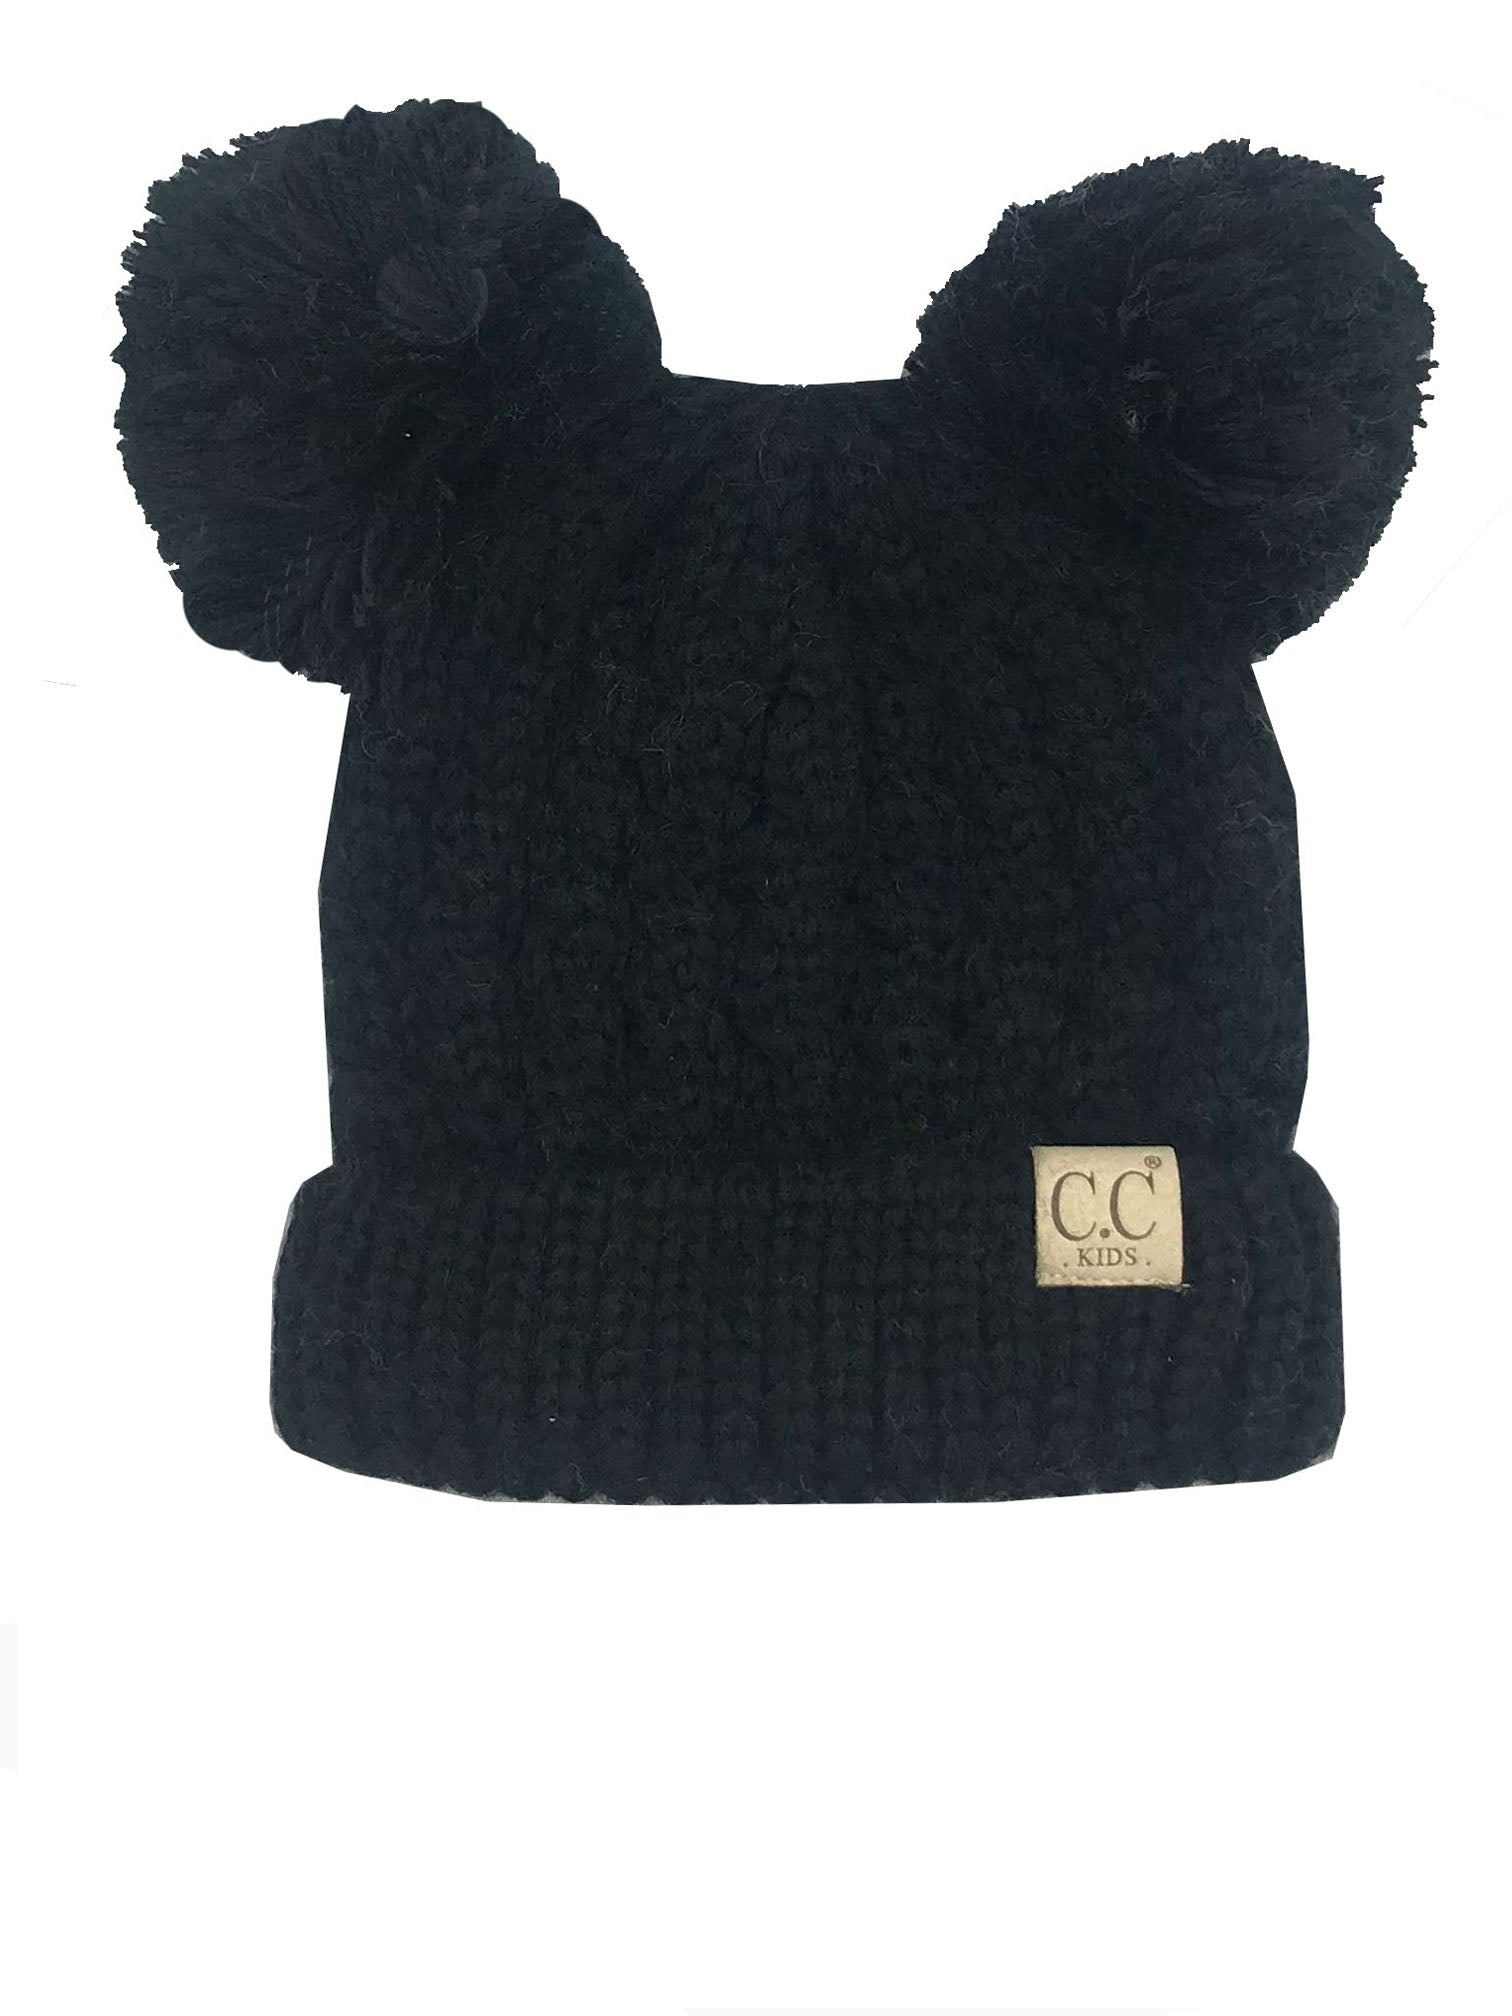 C.C Kid-24 Black Youth Beanie